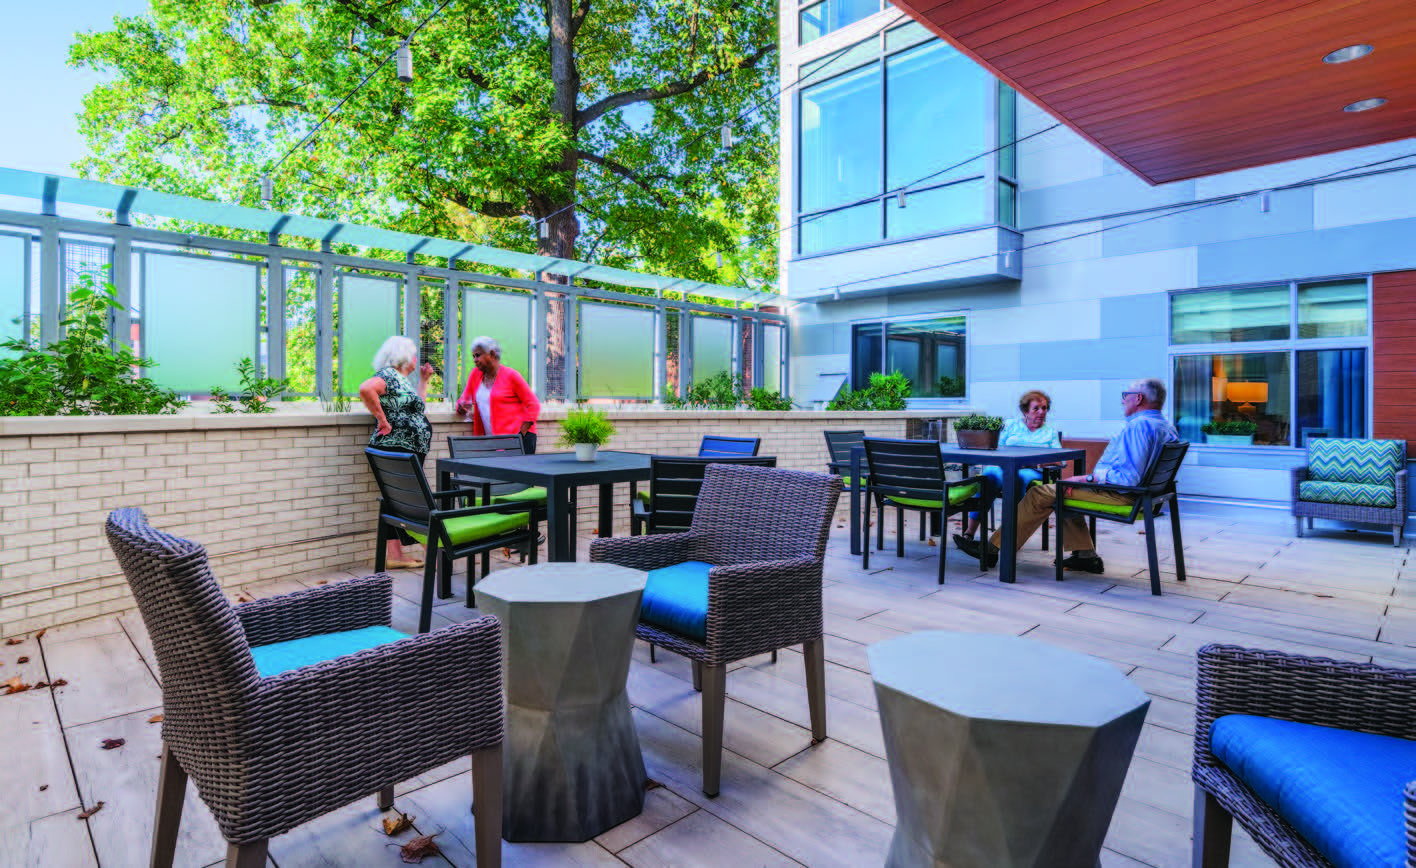 Security and greenery at Brightview Woodmont's memory care terrace, designed by Hord Coplan Macht